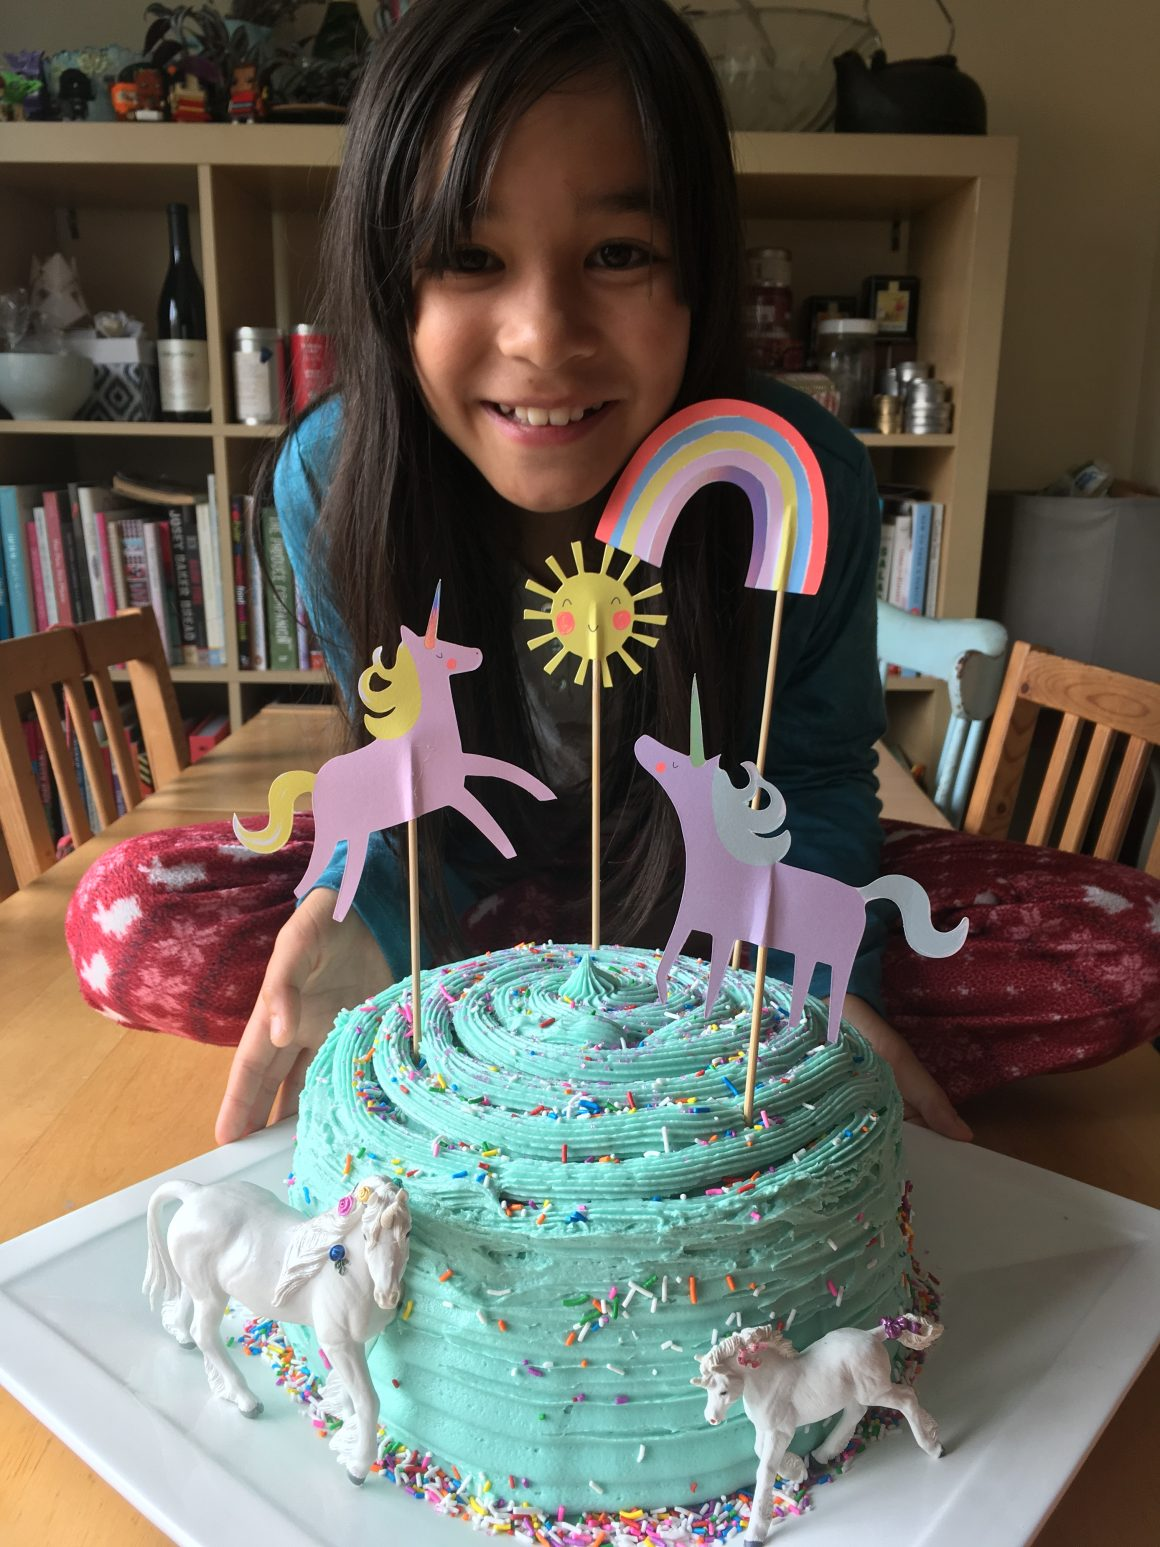 Simple unicorn birthday cake with a rainbow hidden inside.